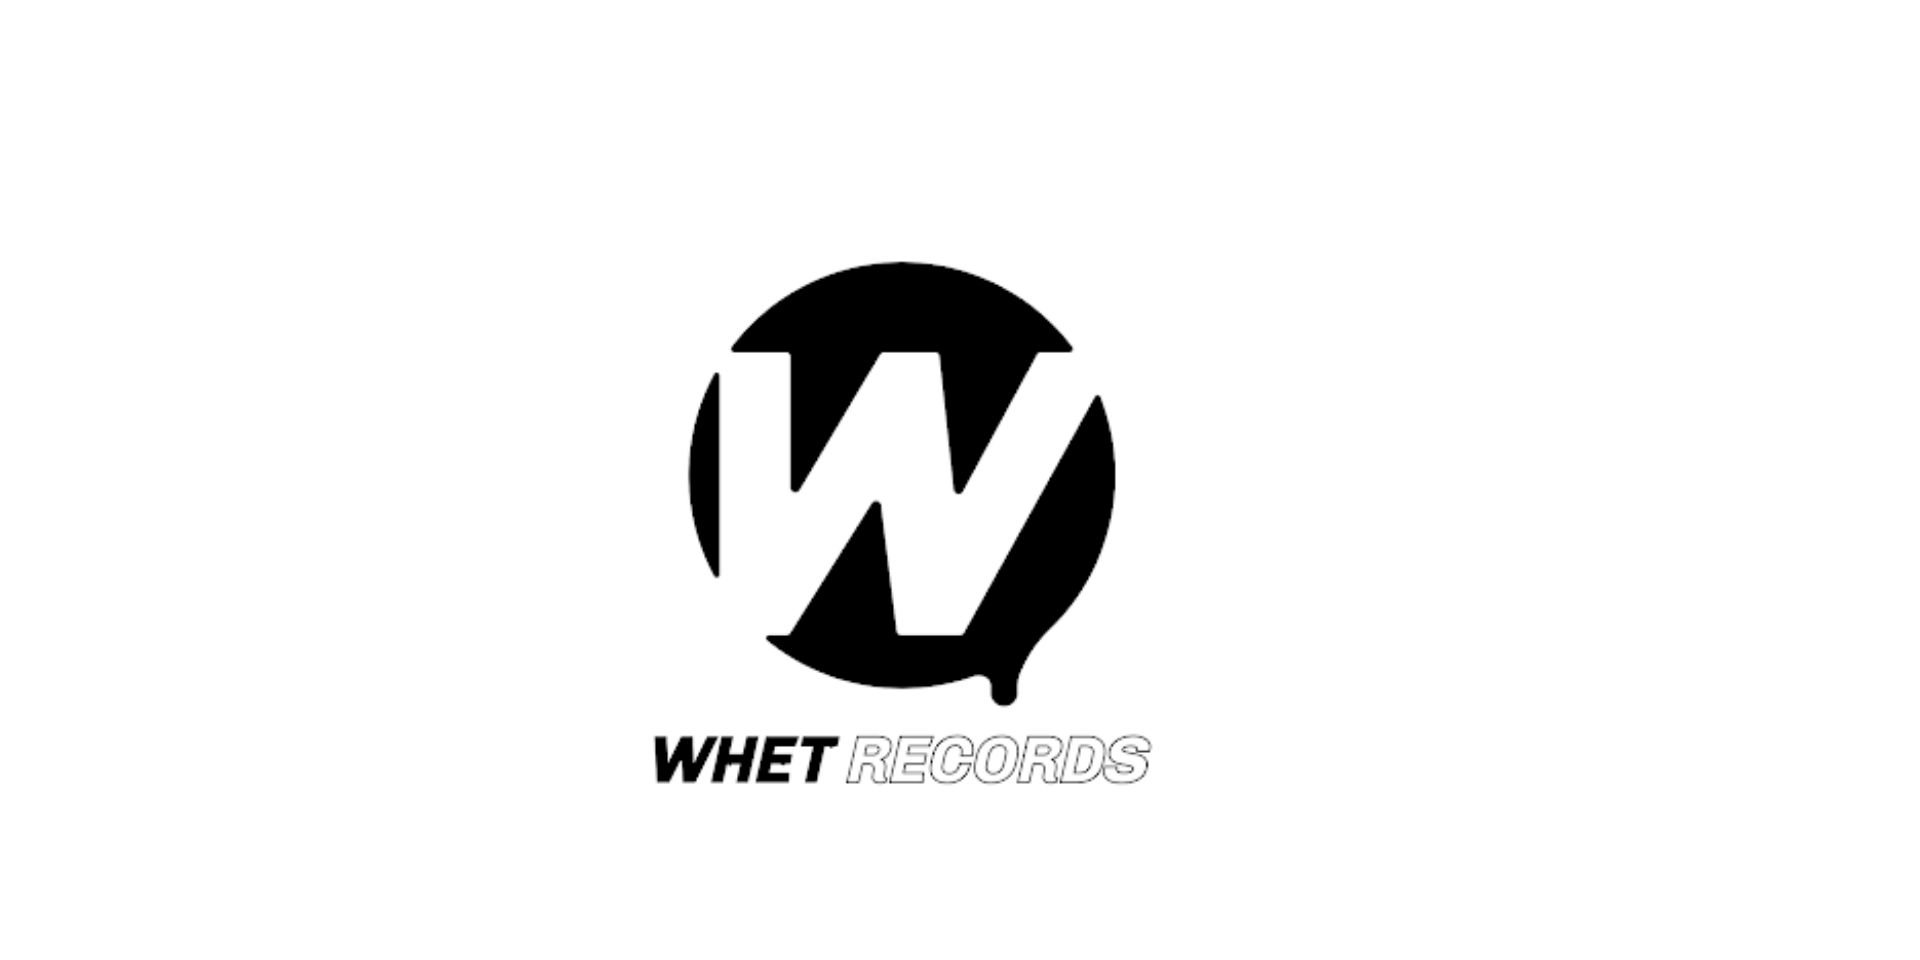 Warner Music Asia's Whet Records expands roster with 22Bullets, Gigi Lee, Yuen Yuen, and more